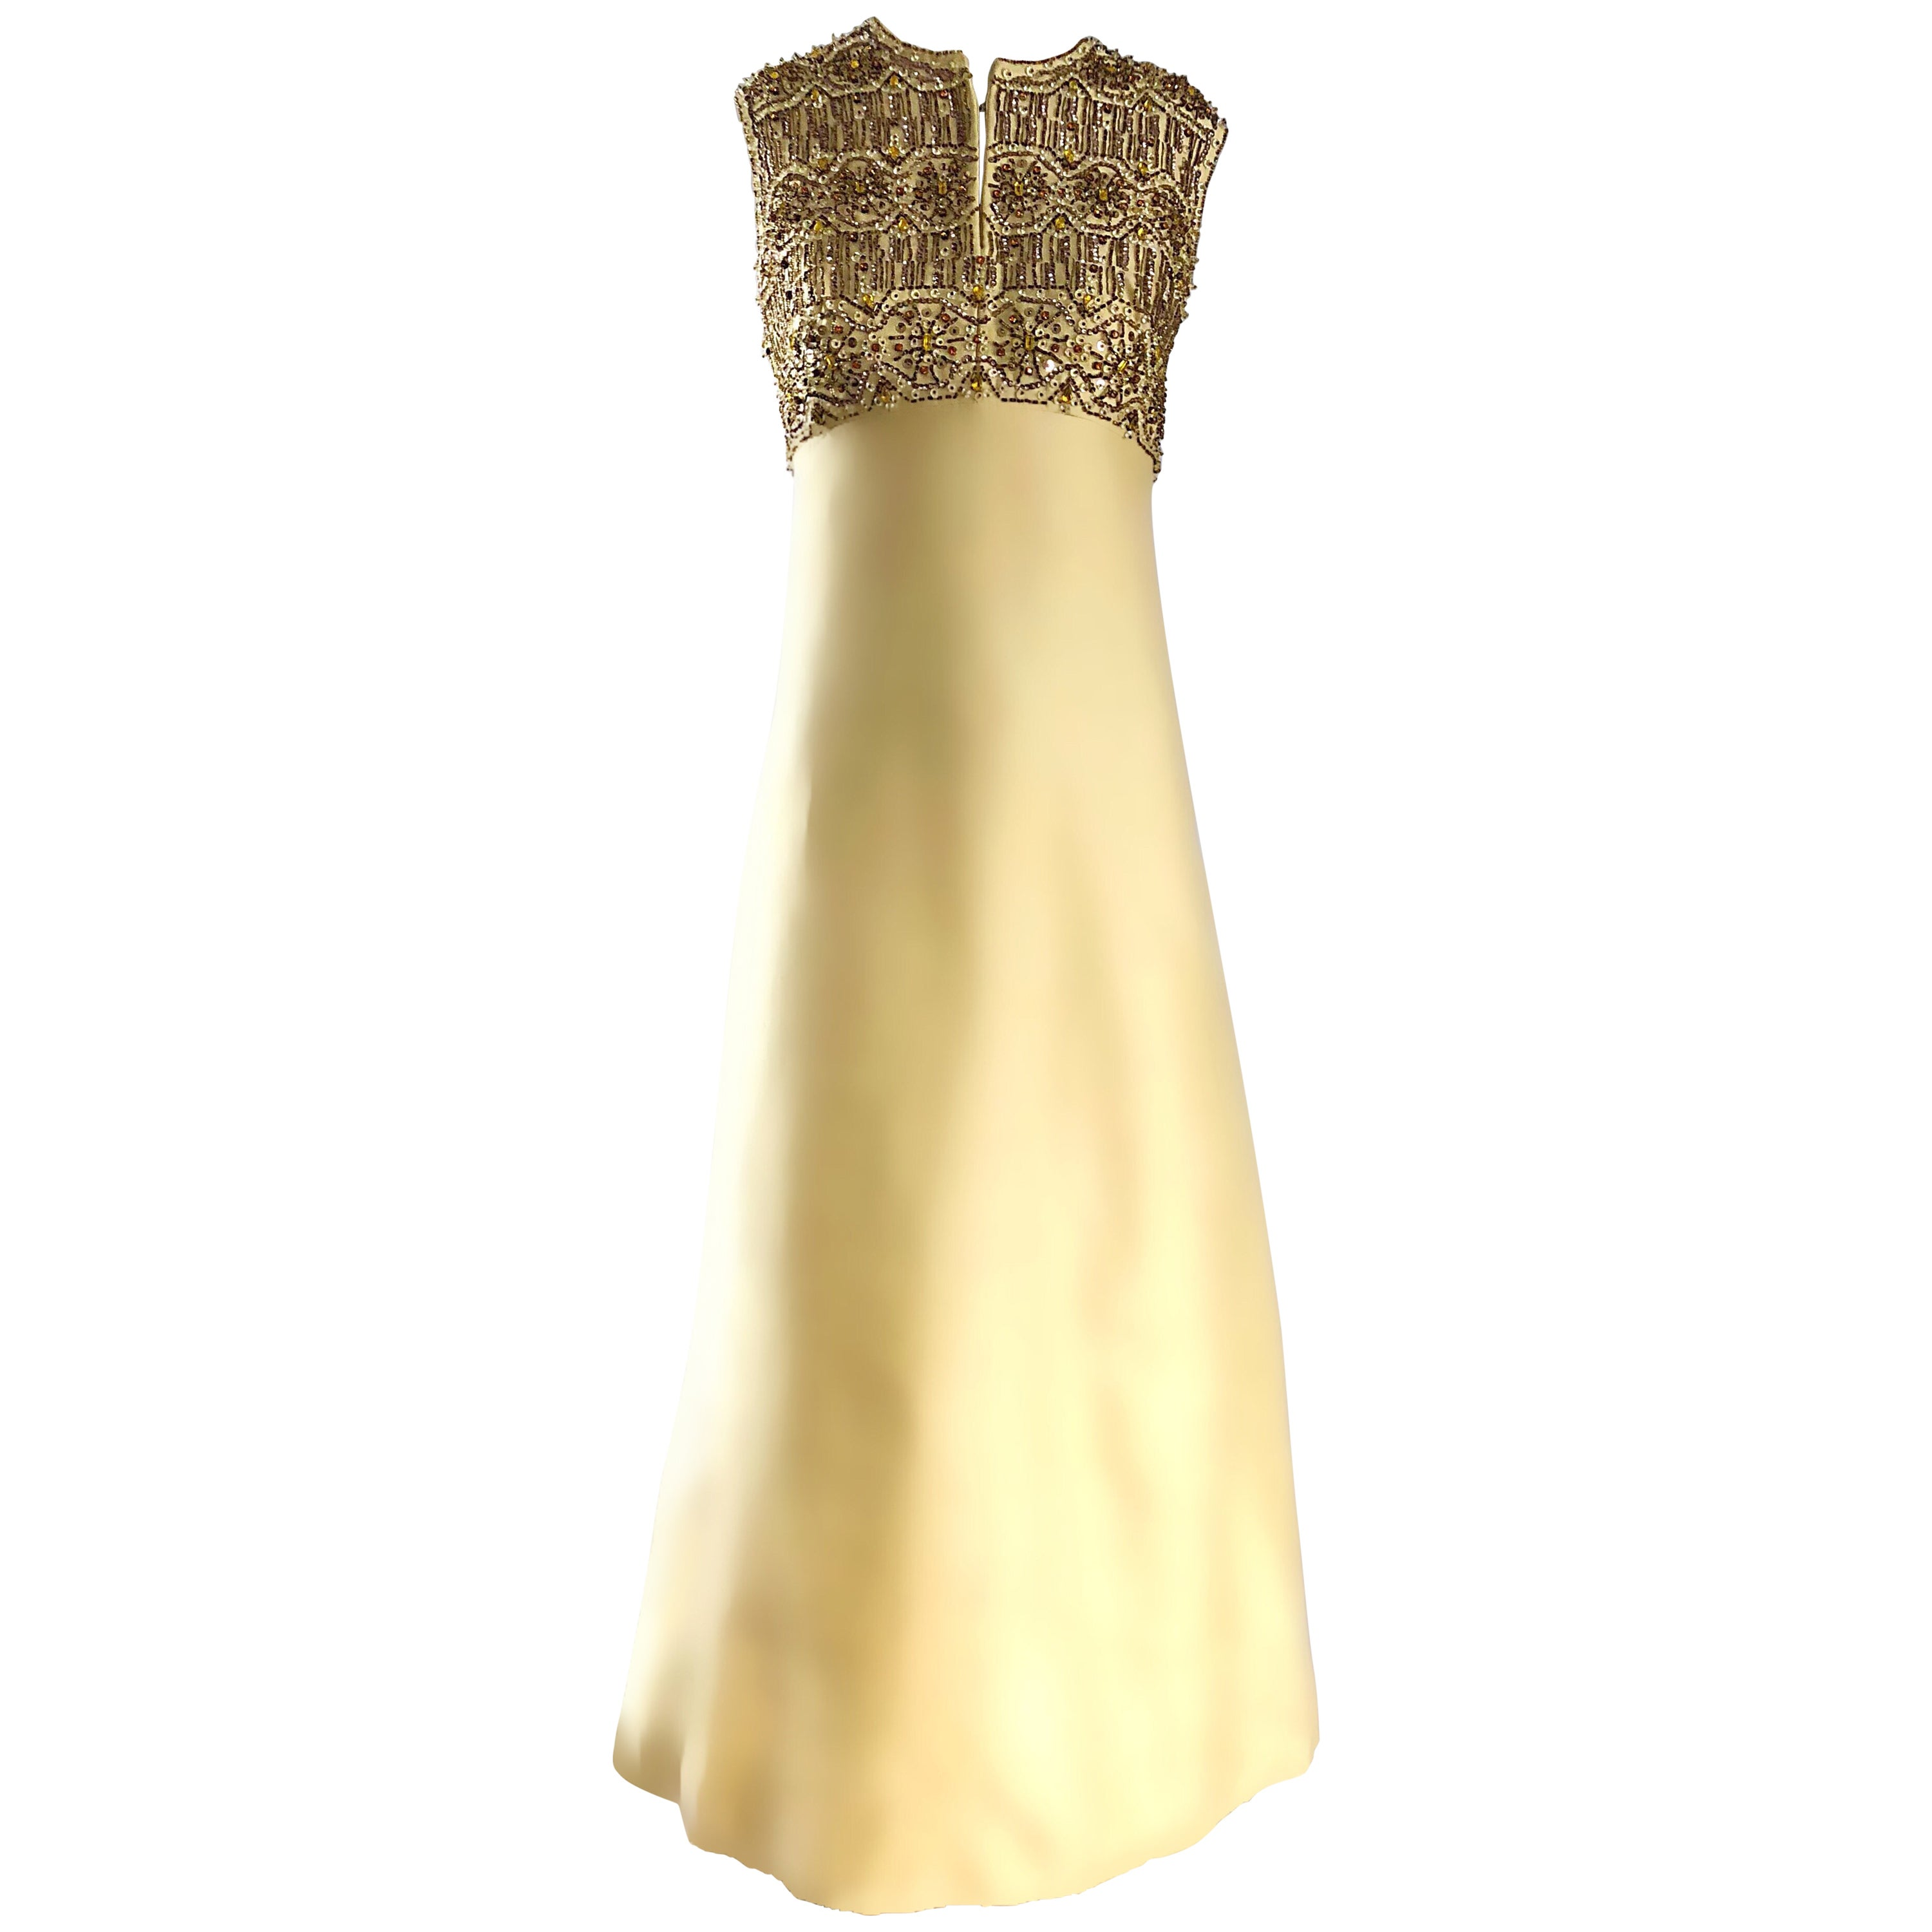 Stunning 1960s Dynasty Pale Yellow Silk Shantung Beaded Vintage Couture Gown